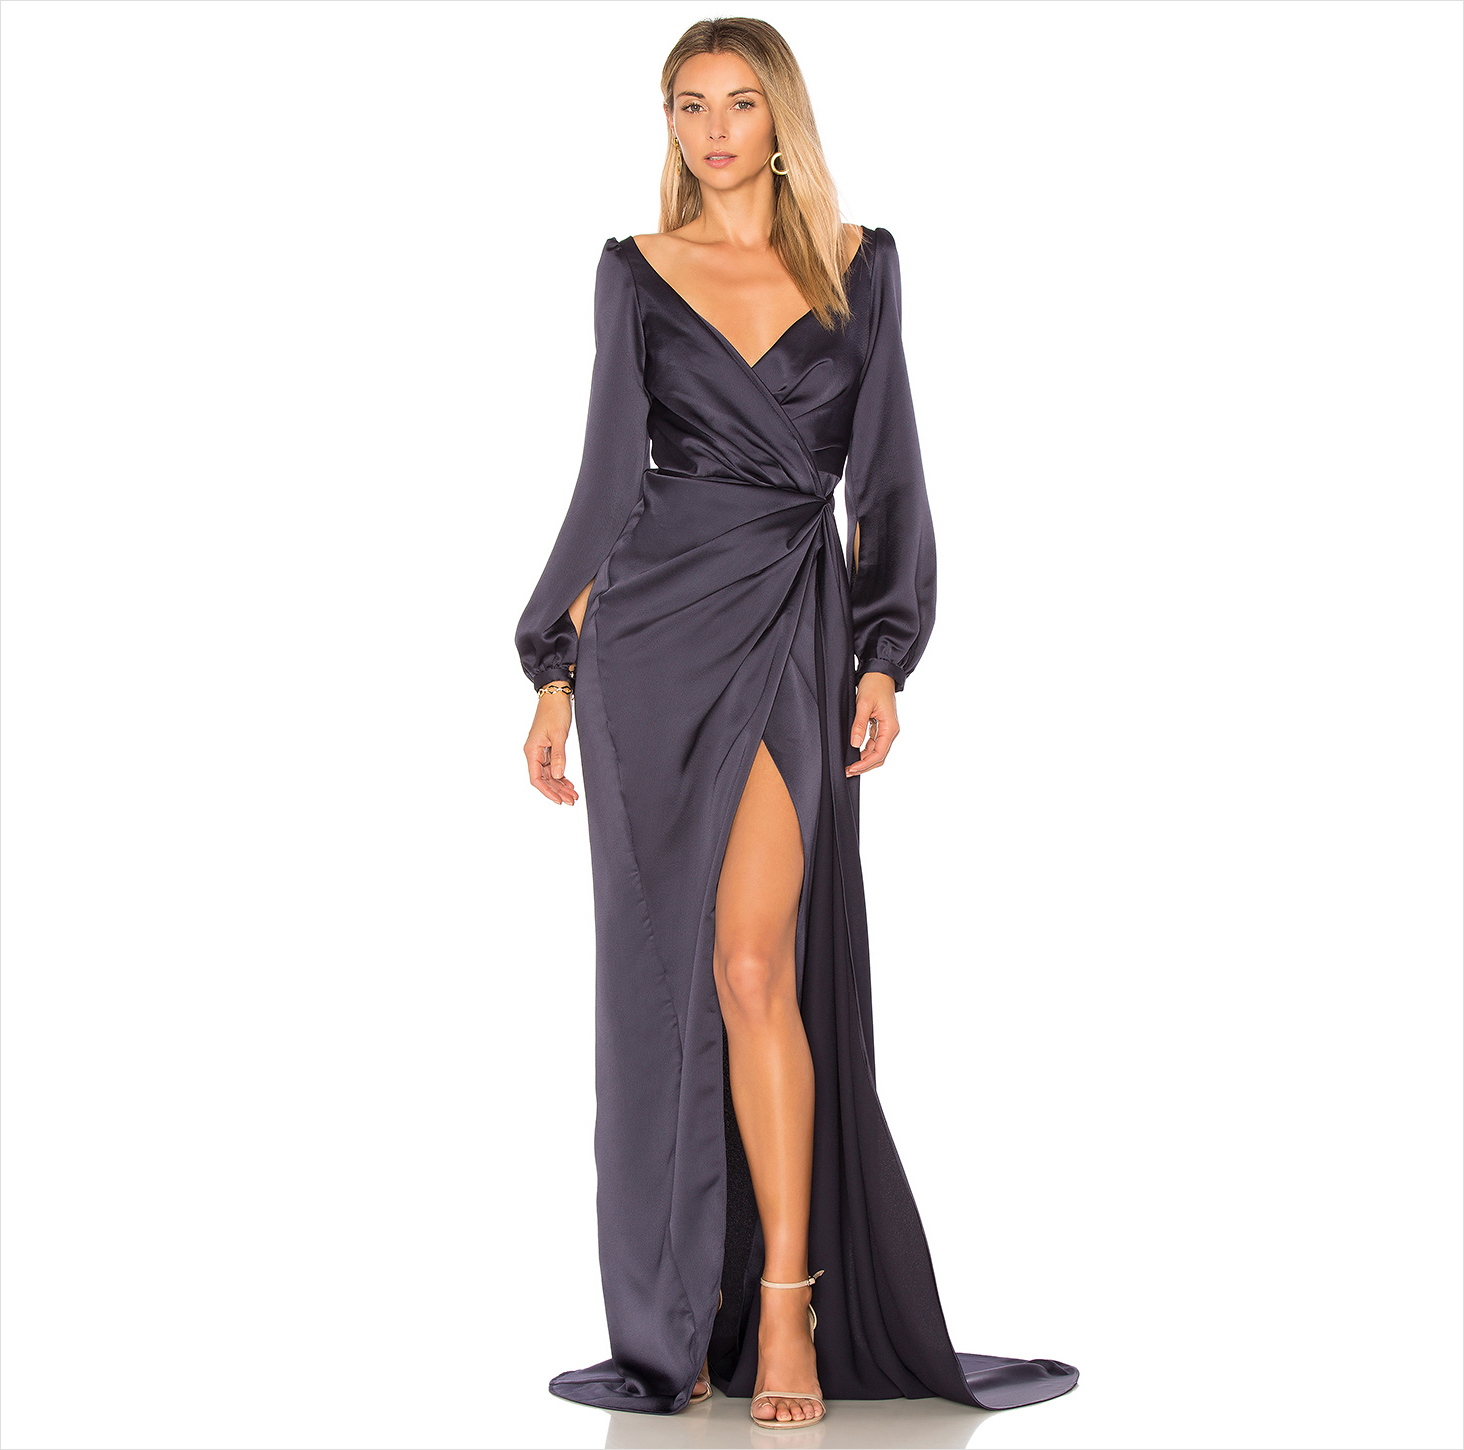 High slit long sleeve wedding guest dress gown ideas Whisky Jay Gemeli Power Revolve